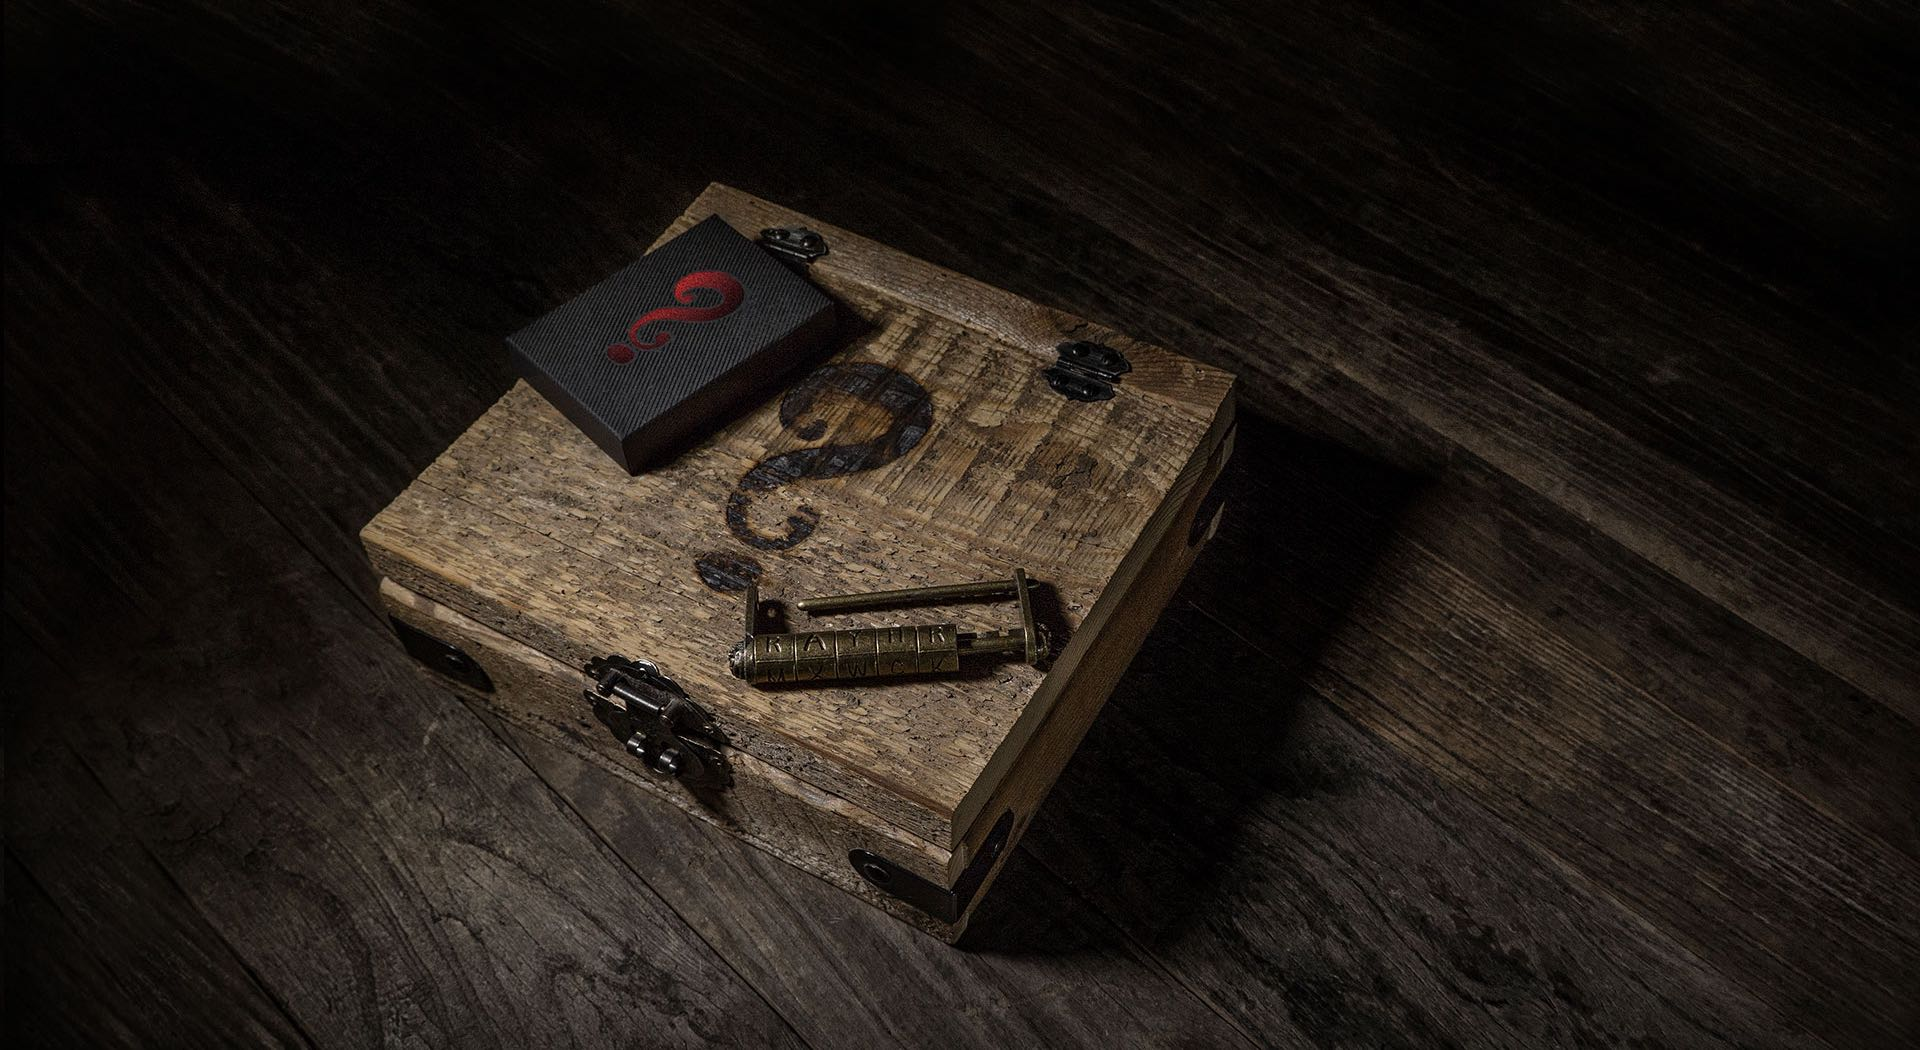 Mystery Box Black Edition playing card set. ($150 with lockbox, $10 for deck alone)